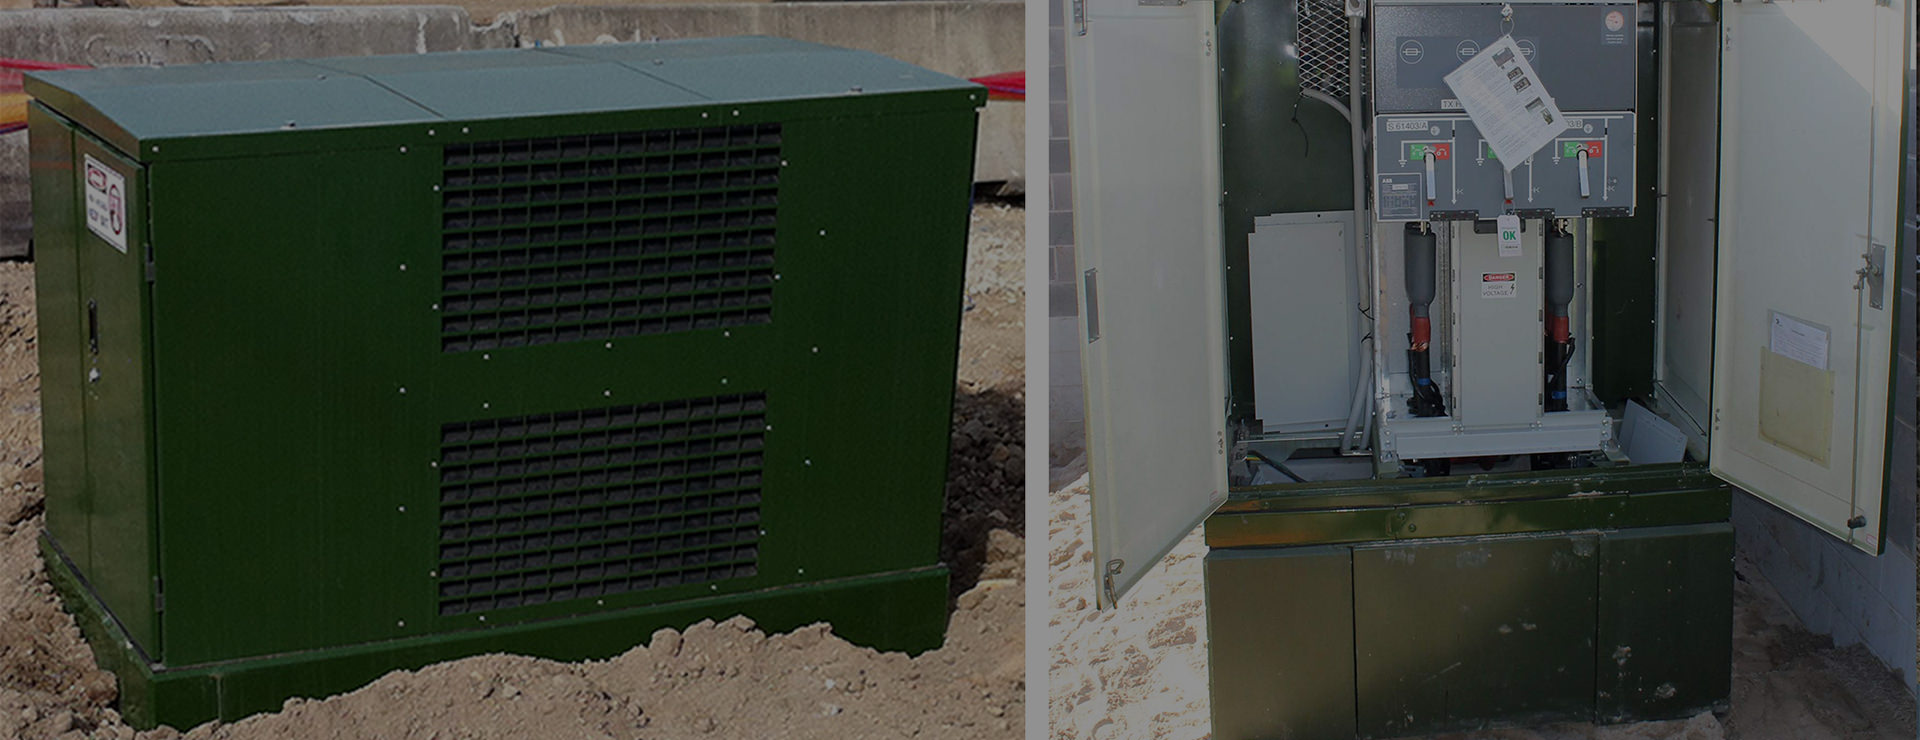 wilken group sydney electrical contracting level 1 asp kiosk sub station